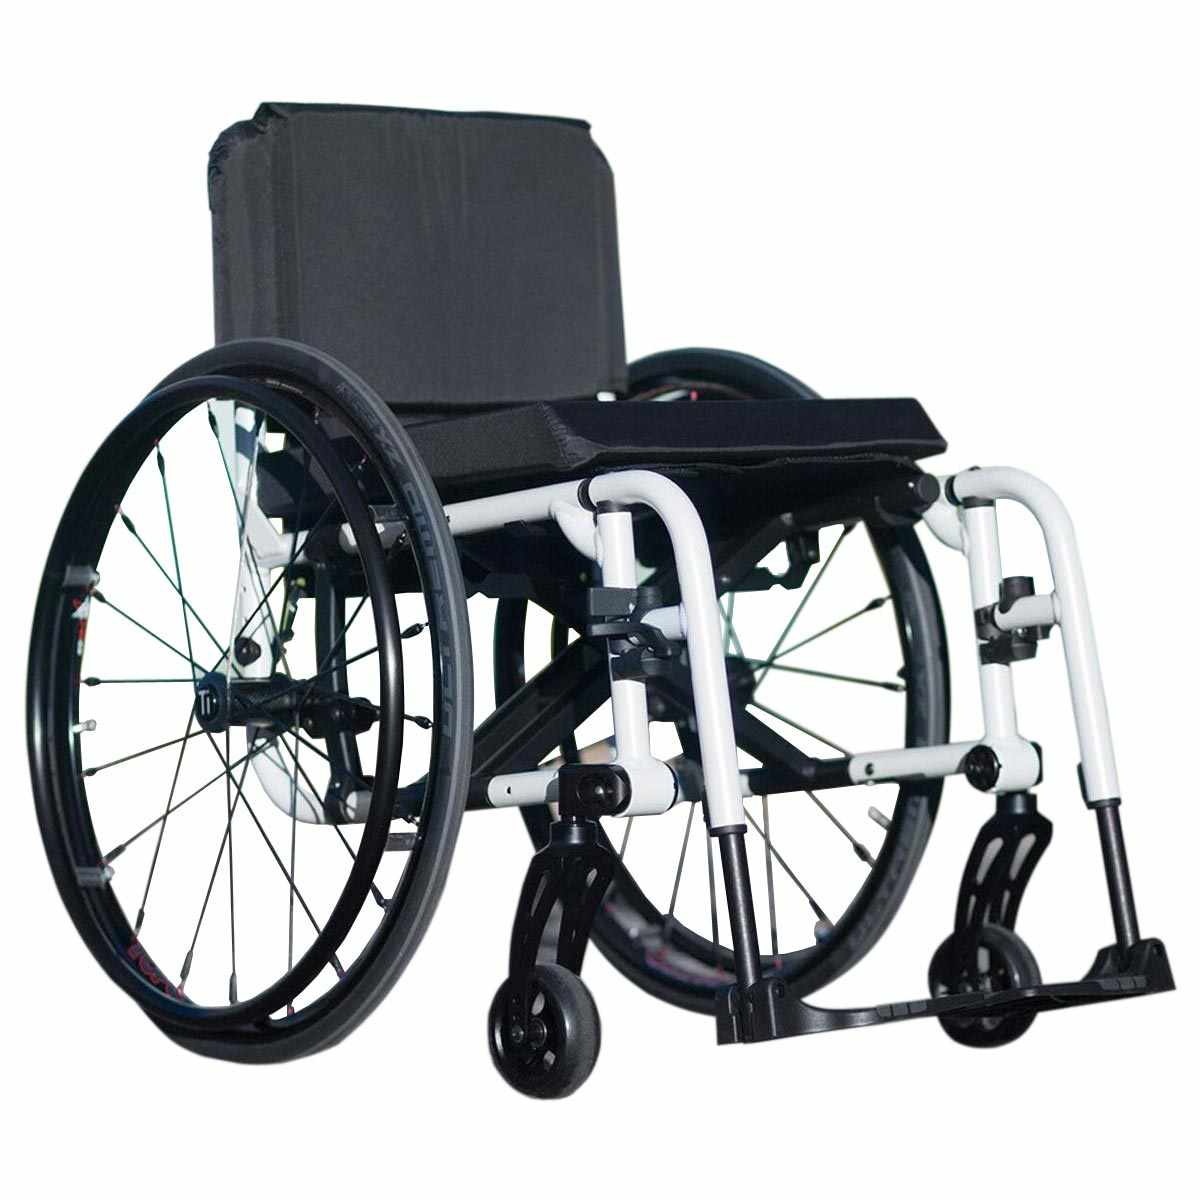 Tilite Aero X series folding ultralight wheelchair